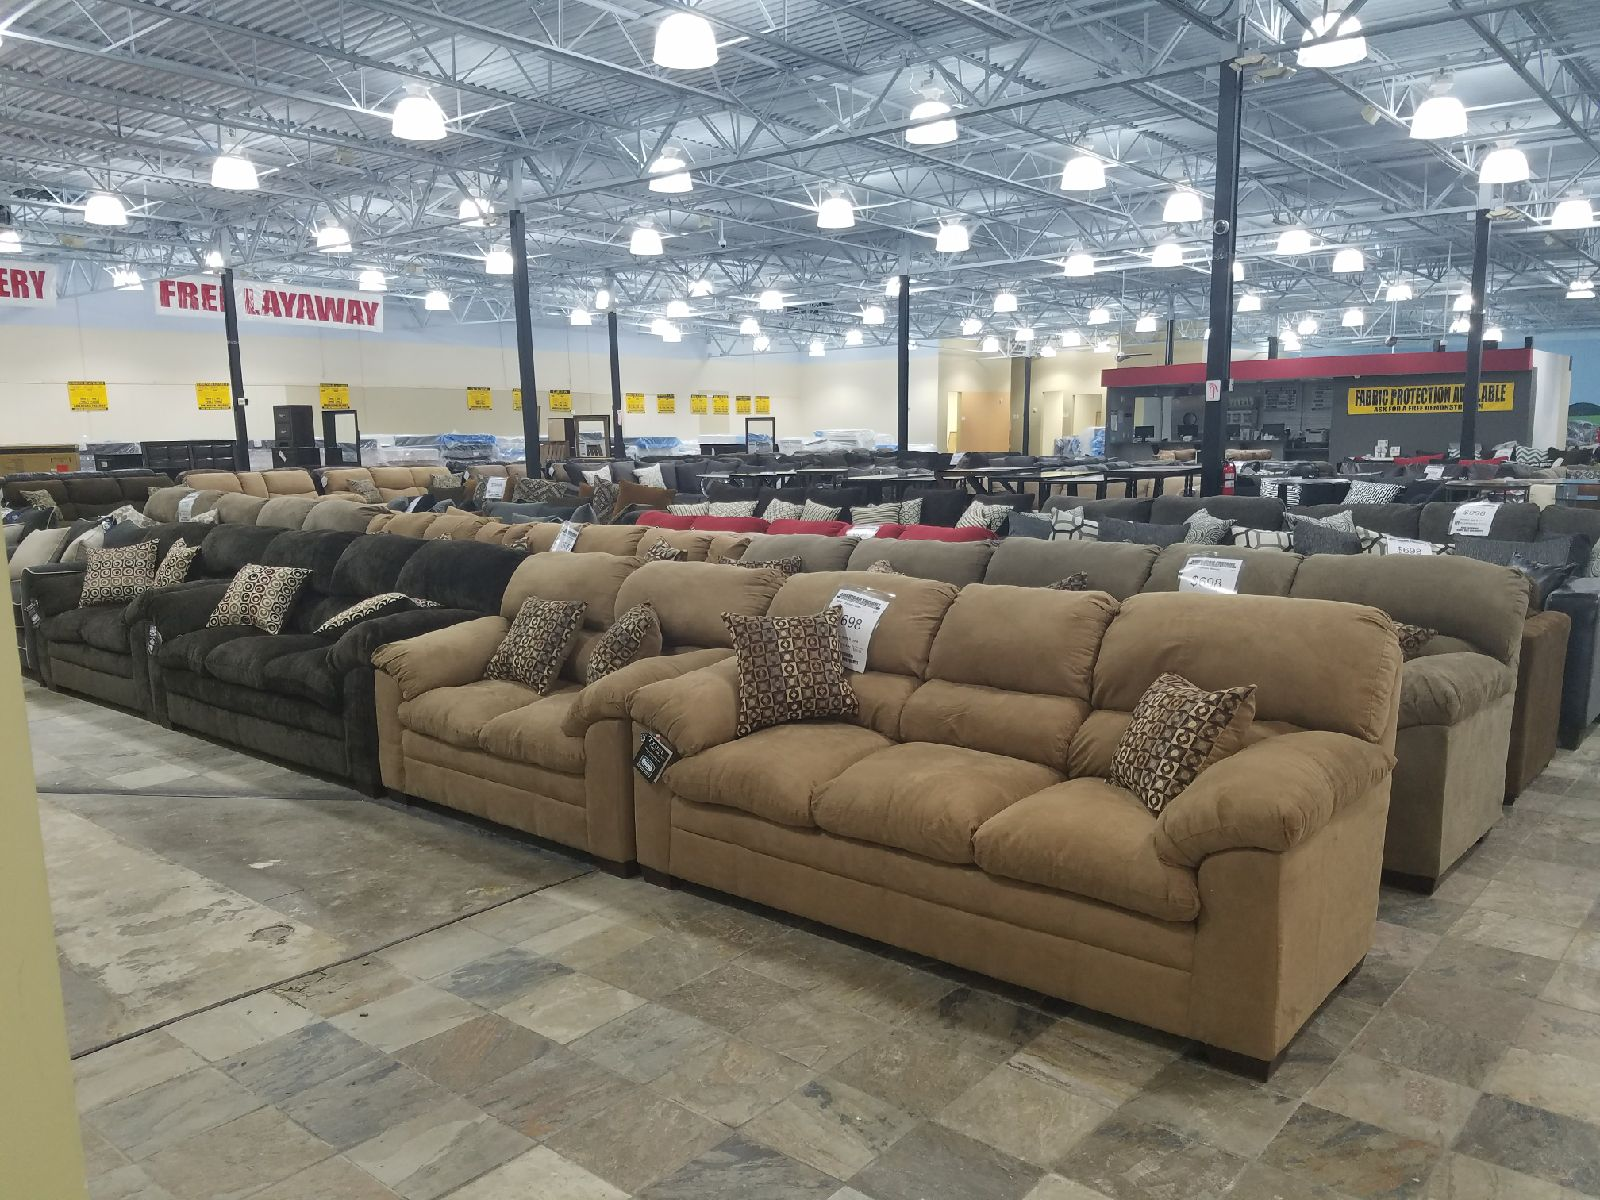 American Freight Furniture And Mattress In North Richland Hills Tx 76180